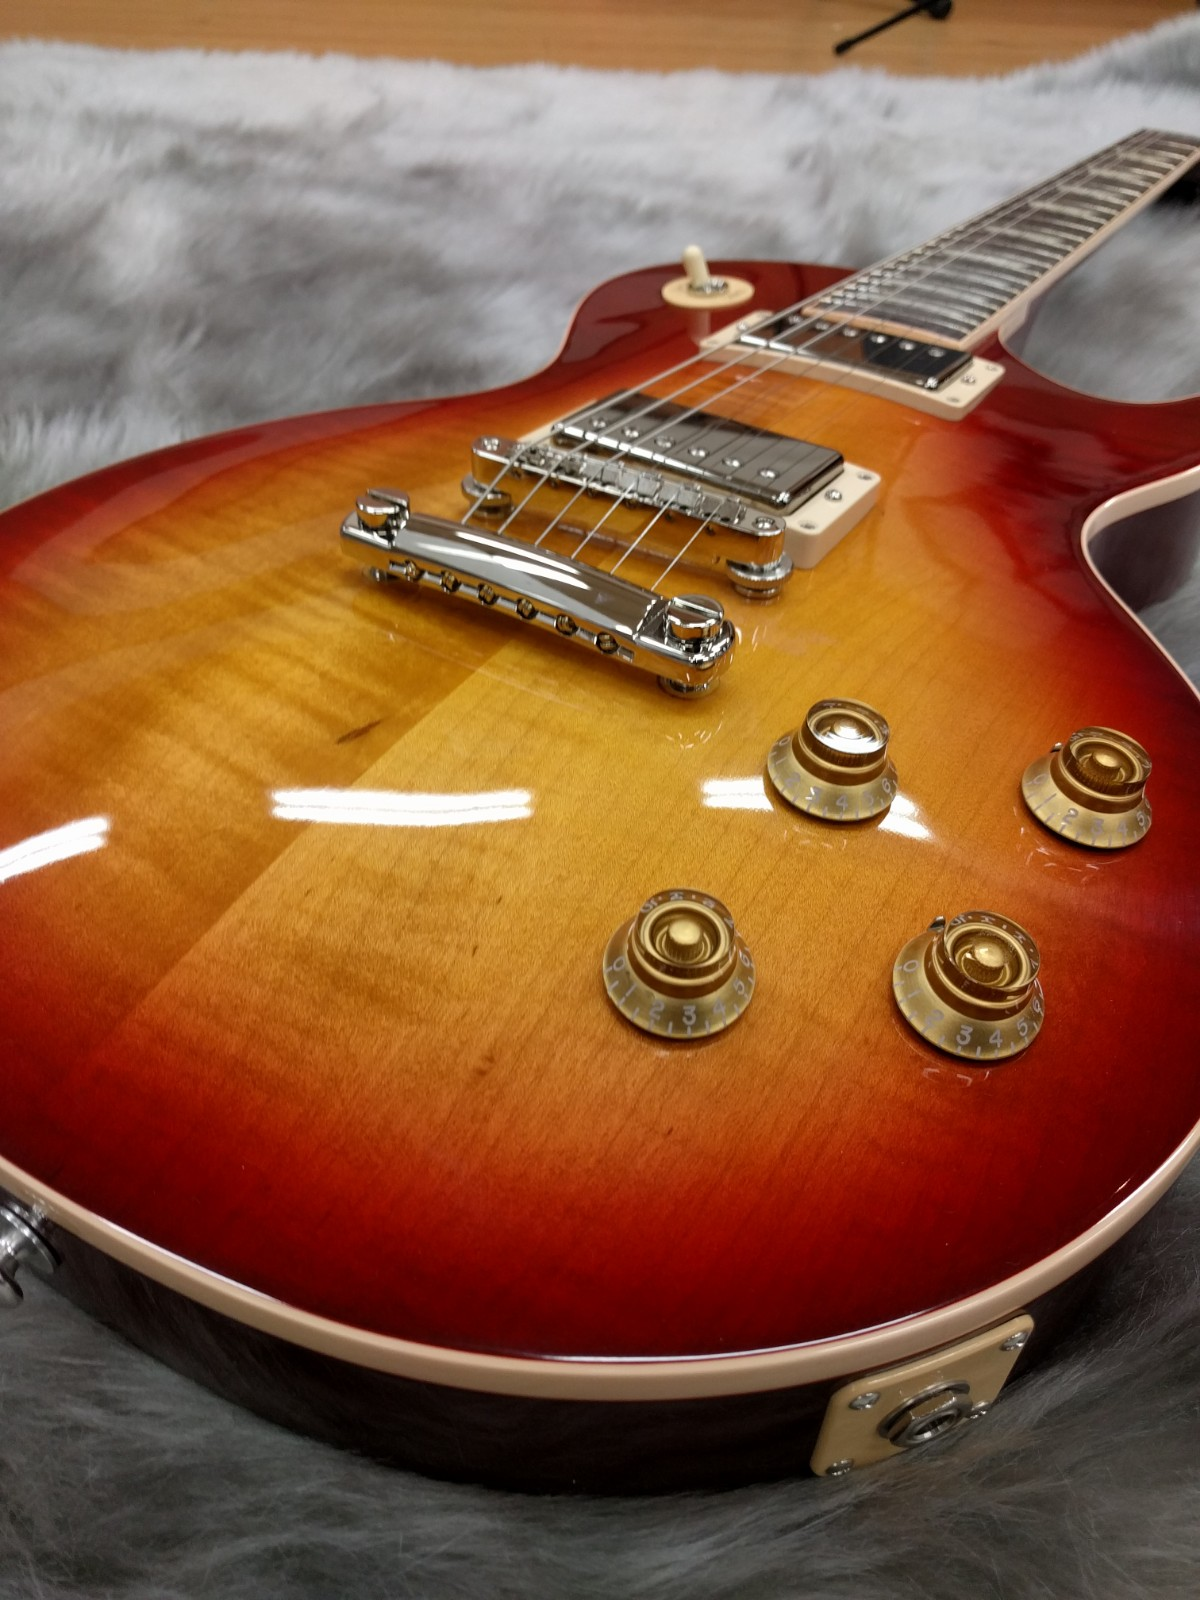 GIbson Les Paul Traditional 2018の全体画像(縦)